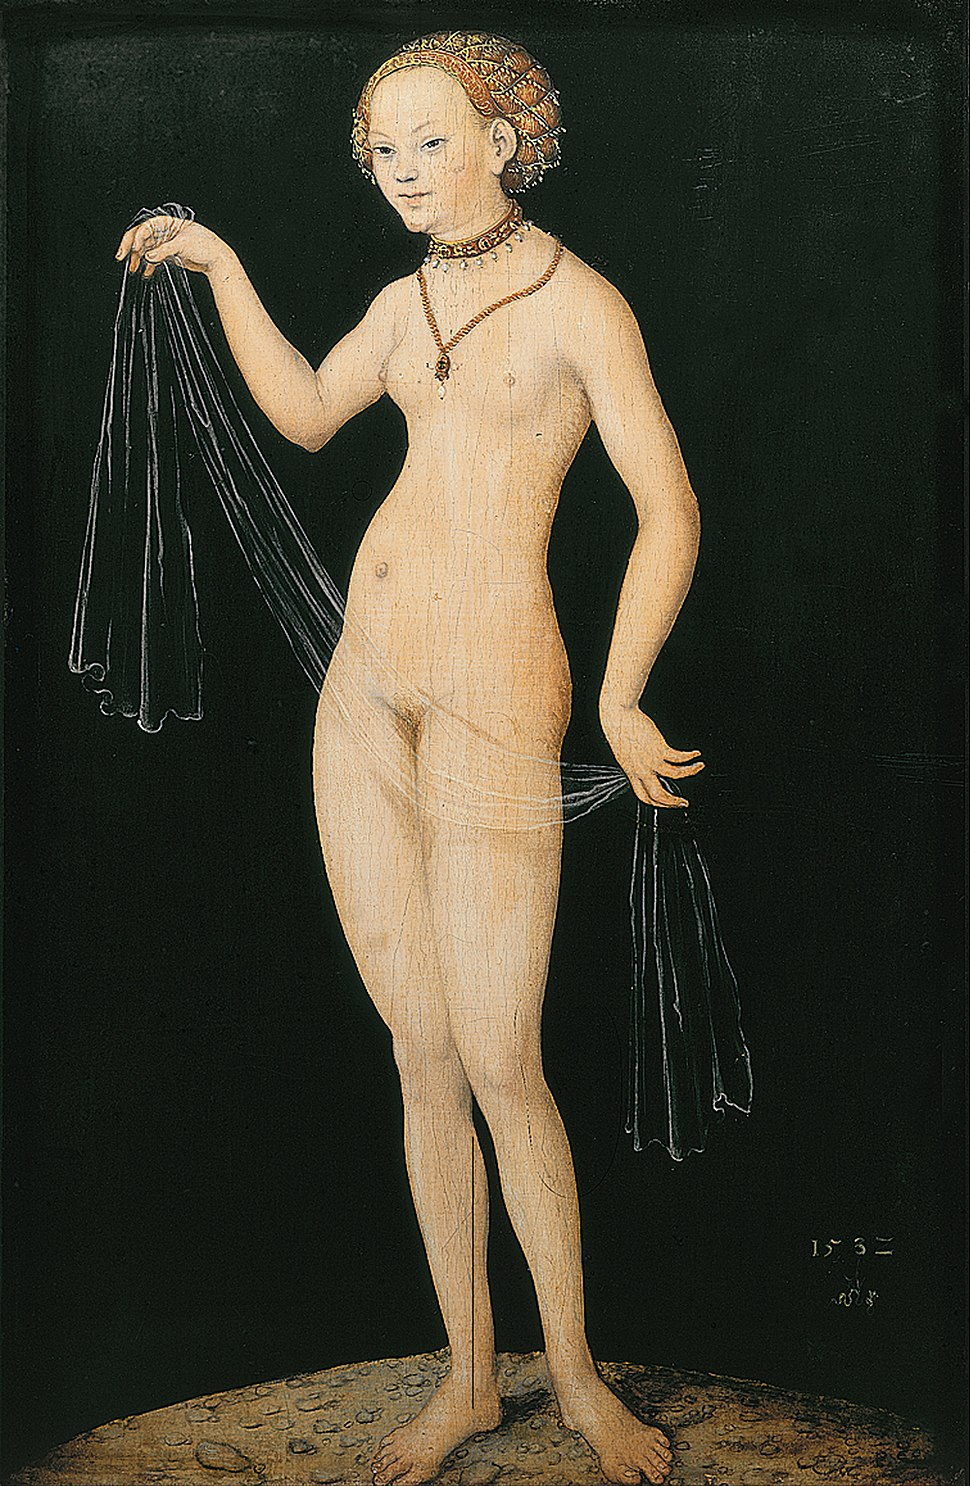 Lucas Cranach the Elder - Venus - Google Art Project